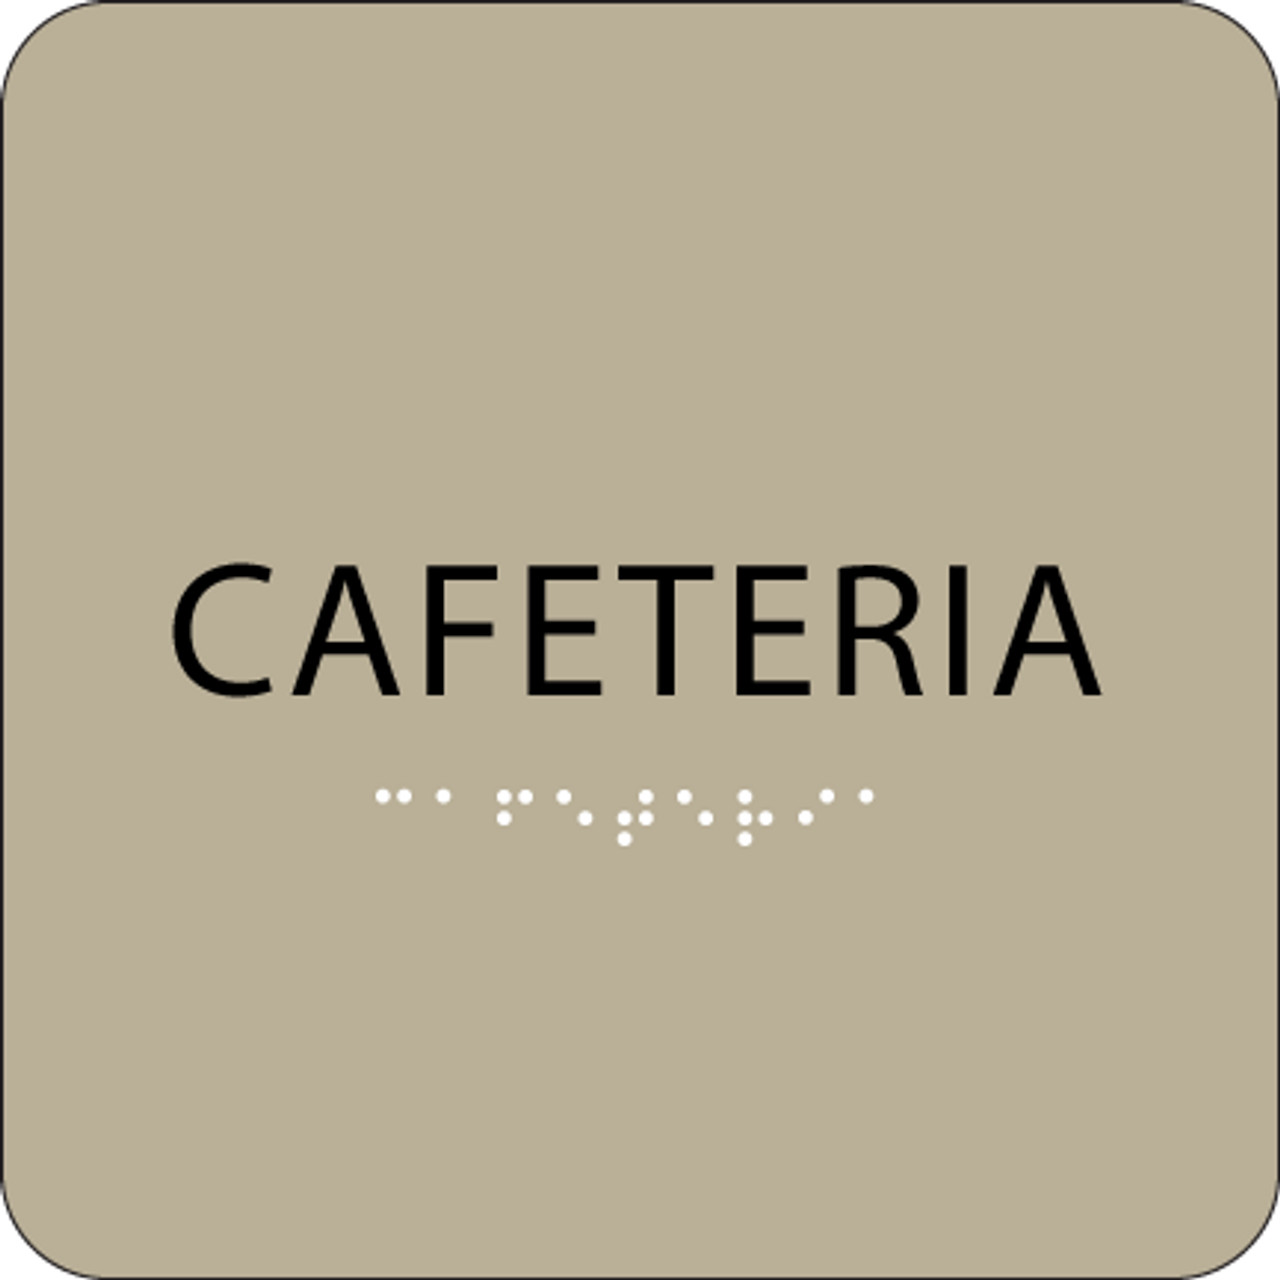 Brown Cafeteria Tactile Sign